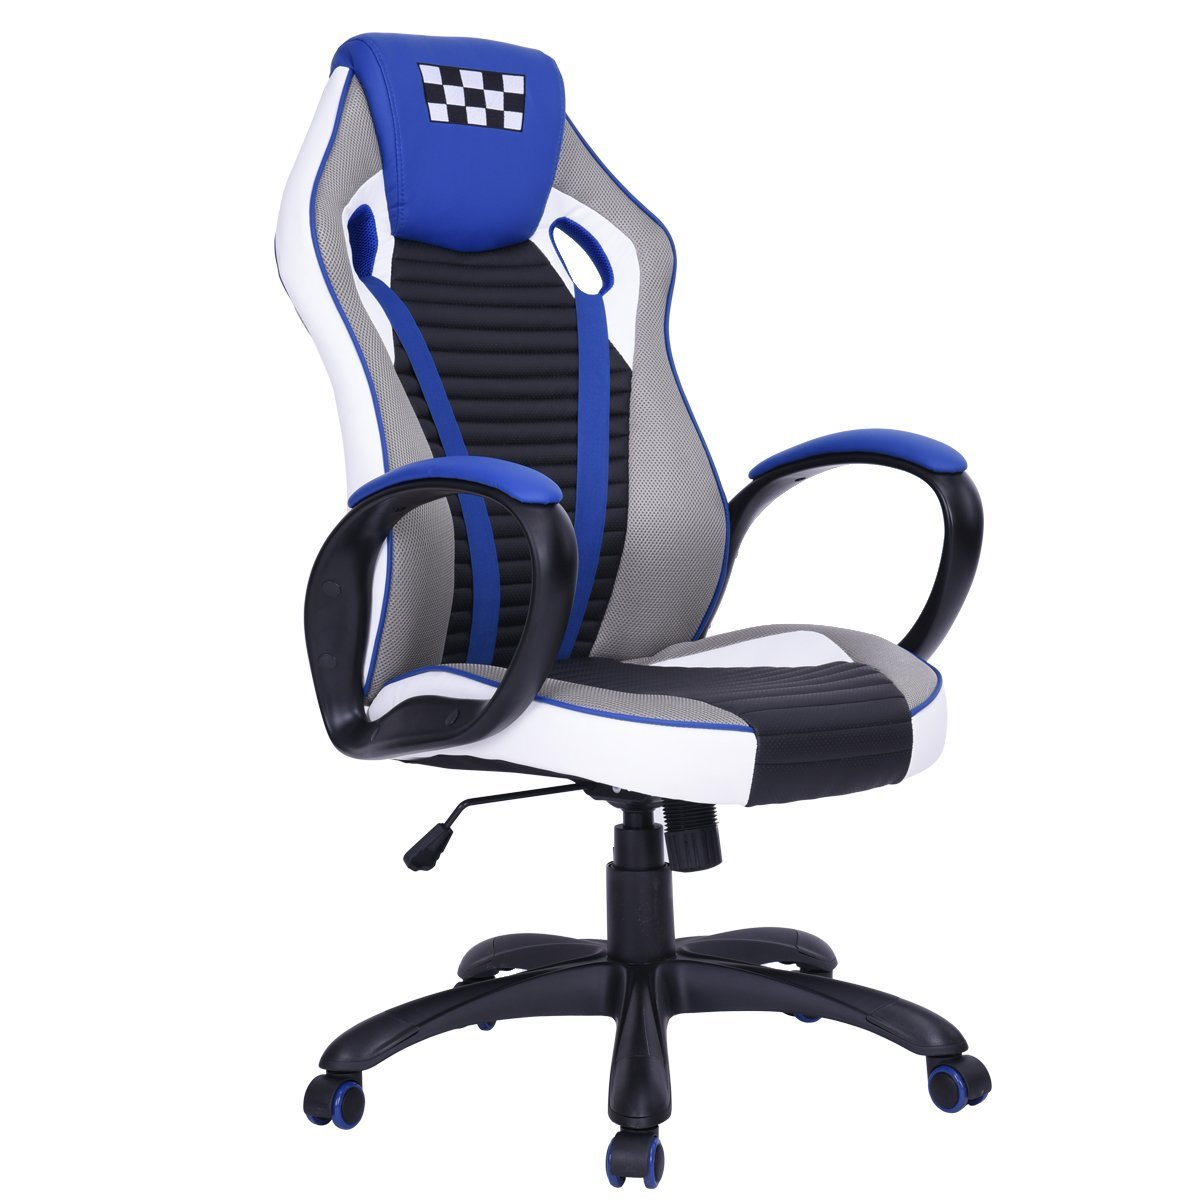 cheap gamer chair fishing platform 10 gaming chairs  under 100 pro